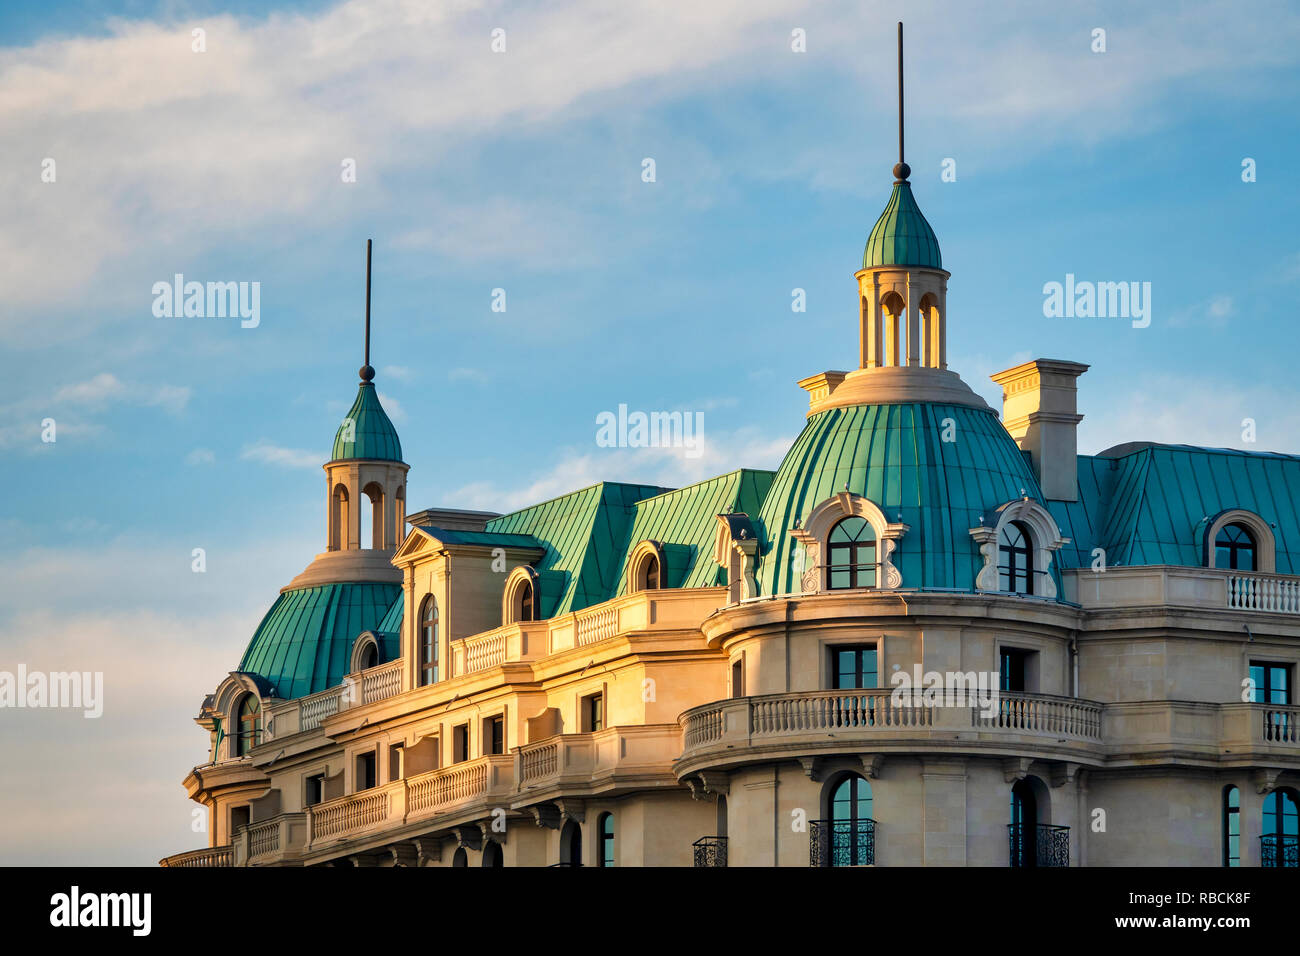 Traditional Baku architecture, Baku Azerbaijan - Stock Image